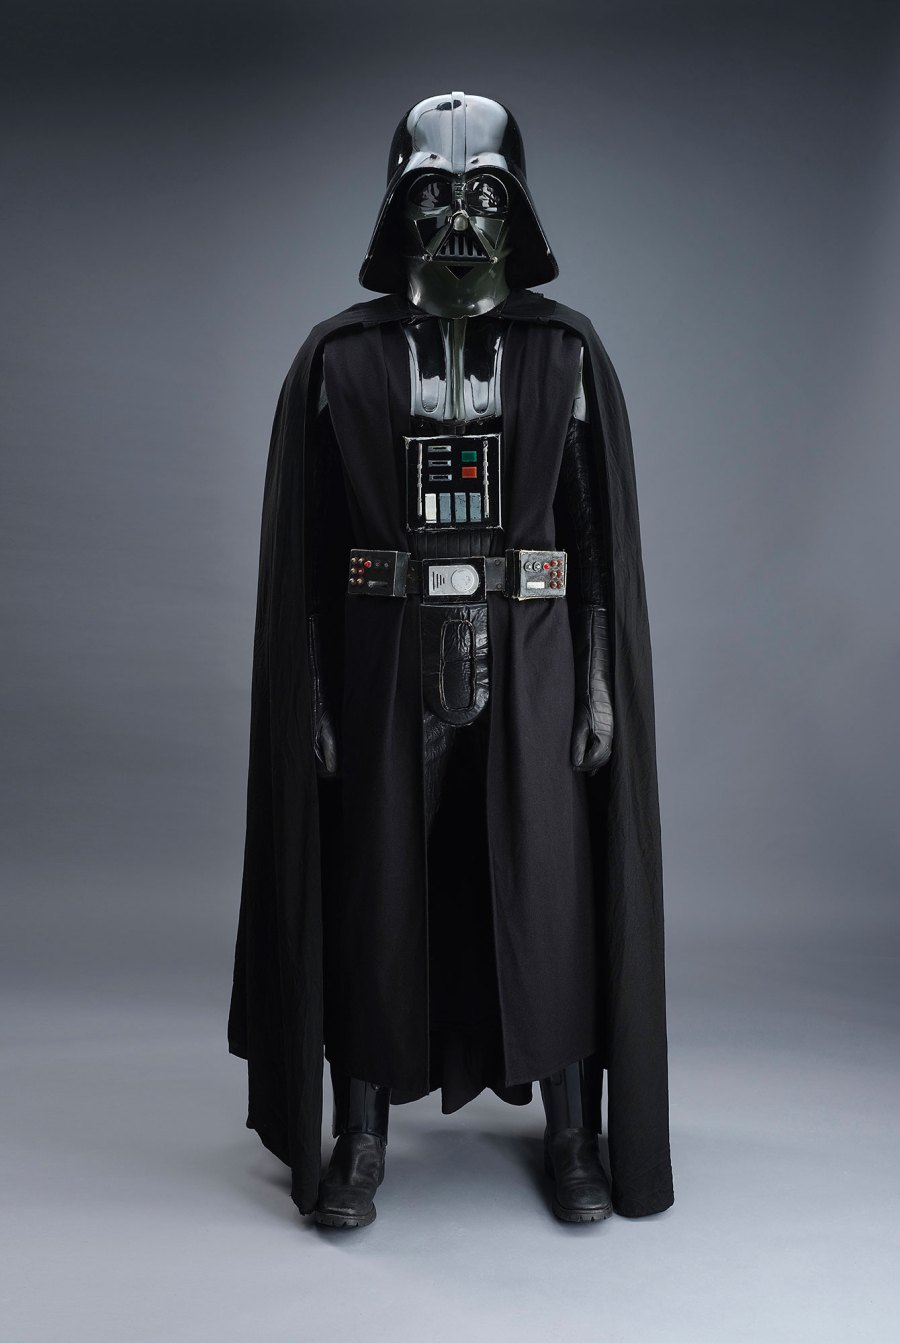 Darth Vader Promotional Touring Costume Auction